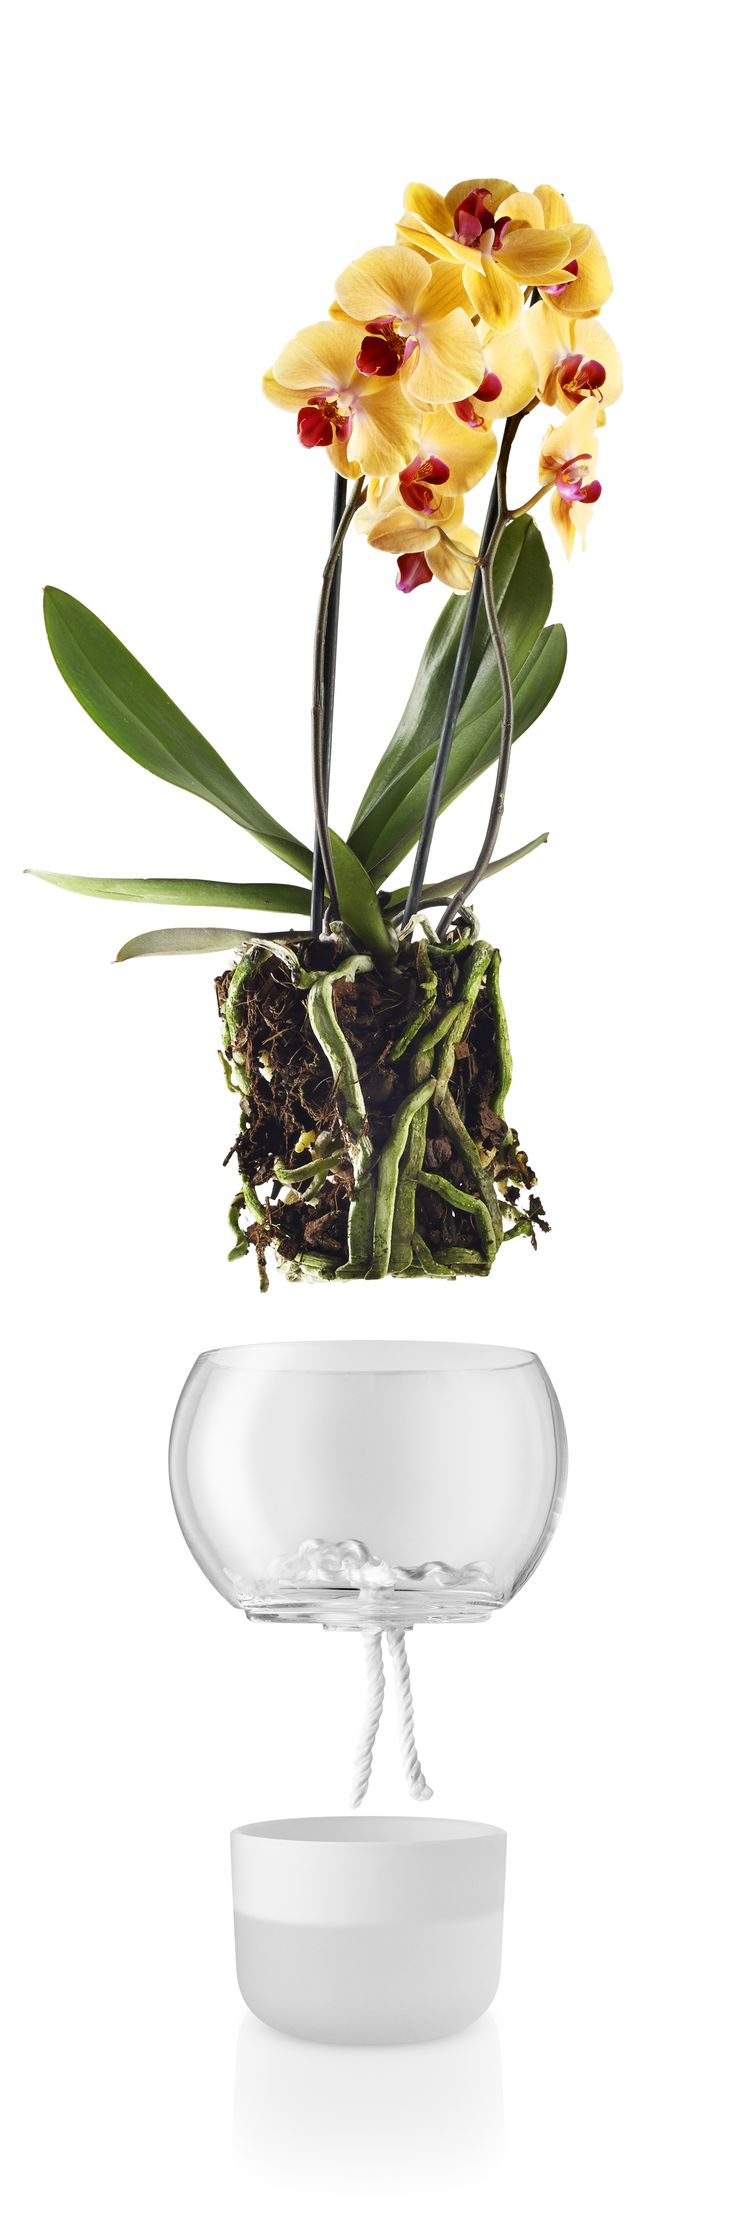 Selfwatering orchid pot 15 cm by Eva Solo